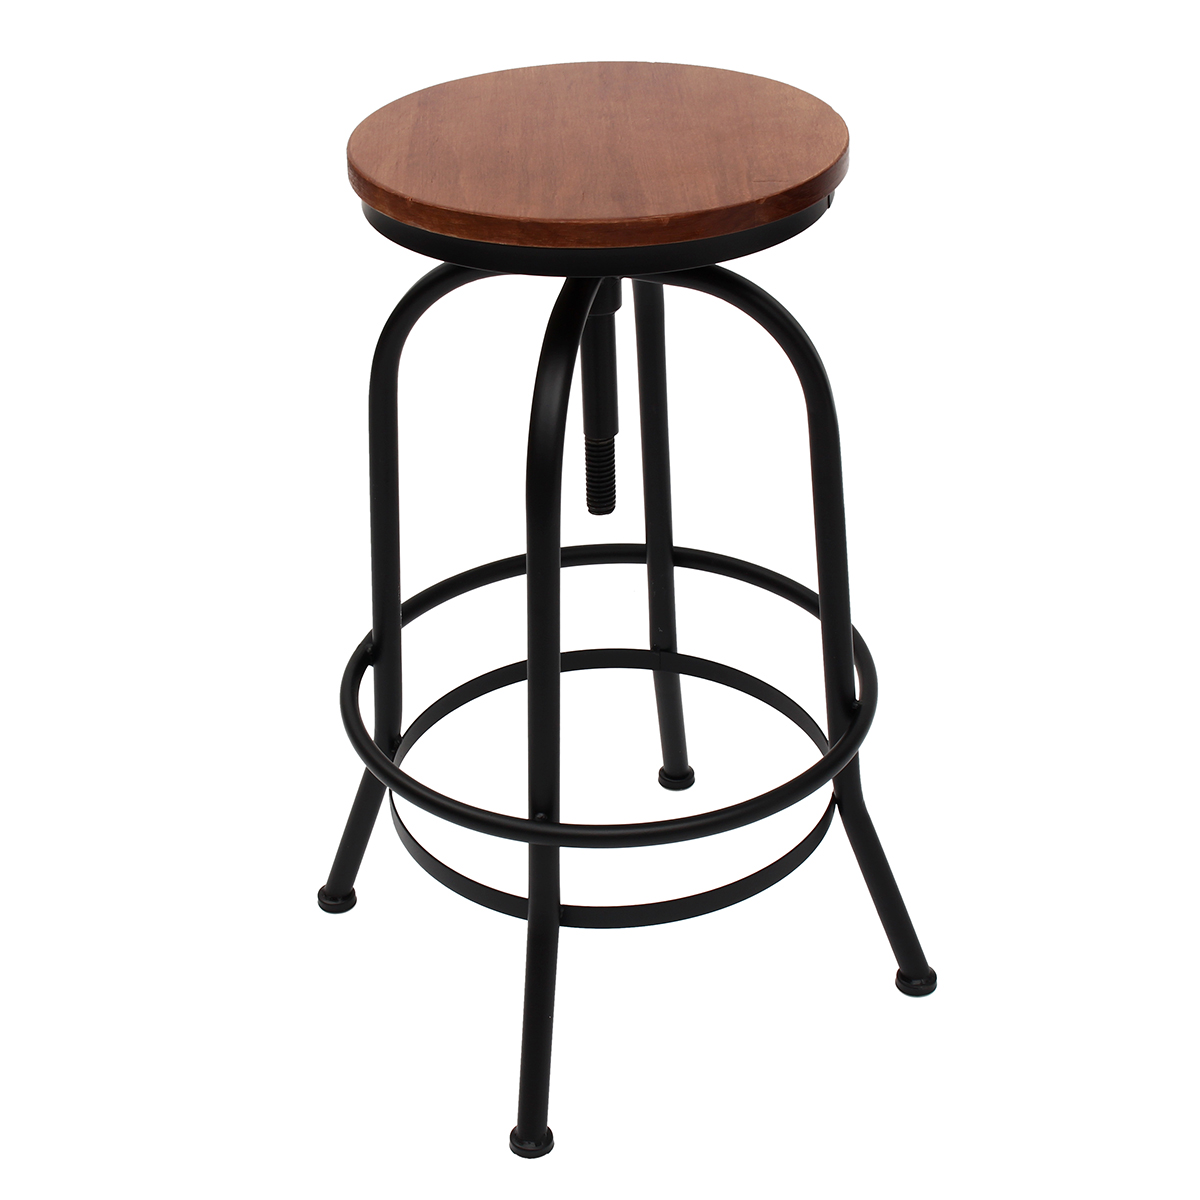 Vintage Urban Bar Stool Industrial Retro Adjustable Height